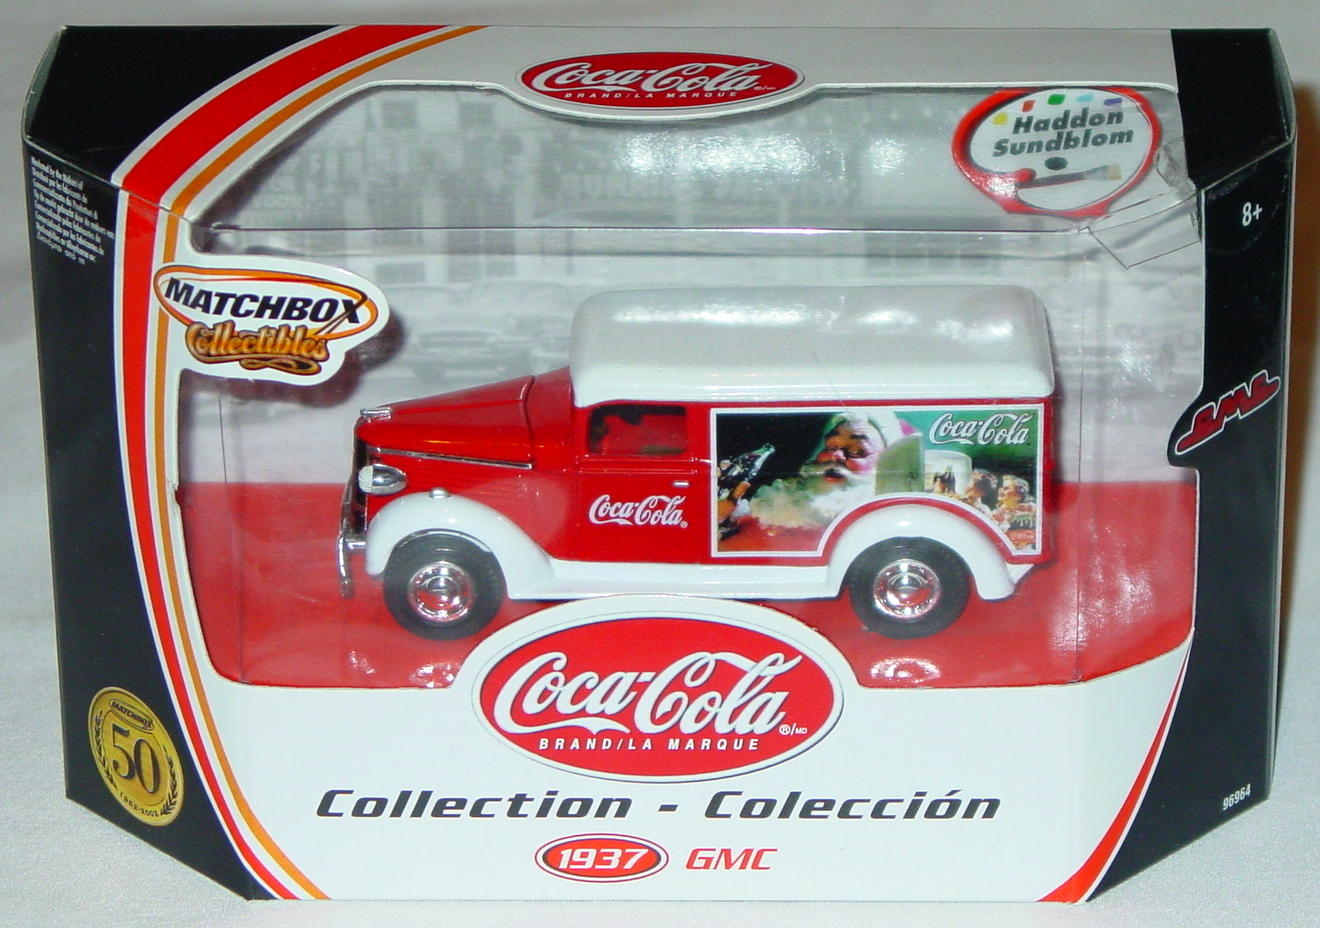 Collectibles - 96964 37 GMC Van Coke Haddon Sundblom